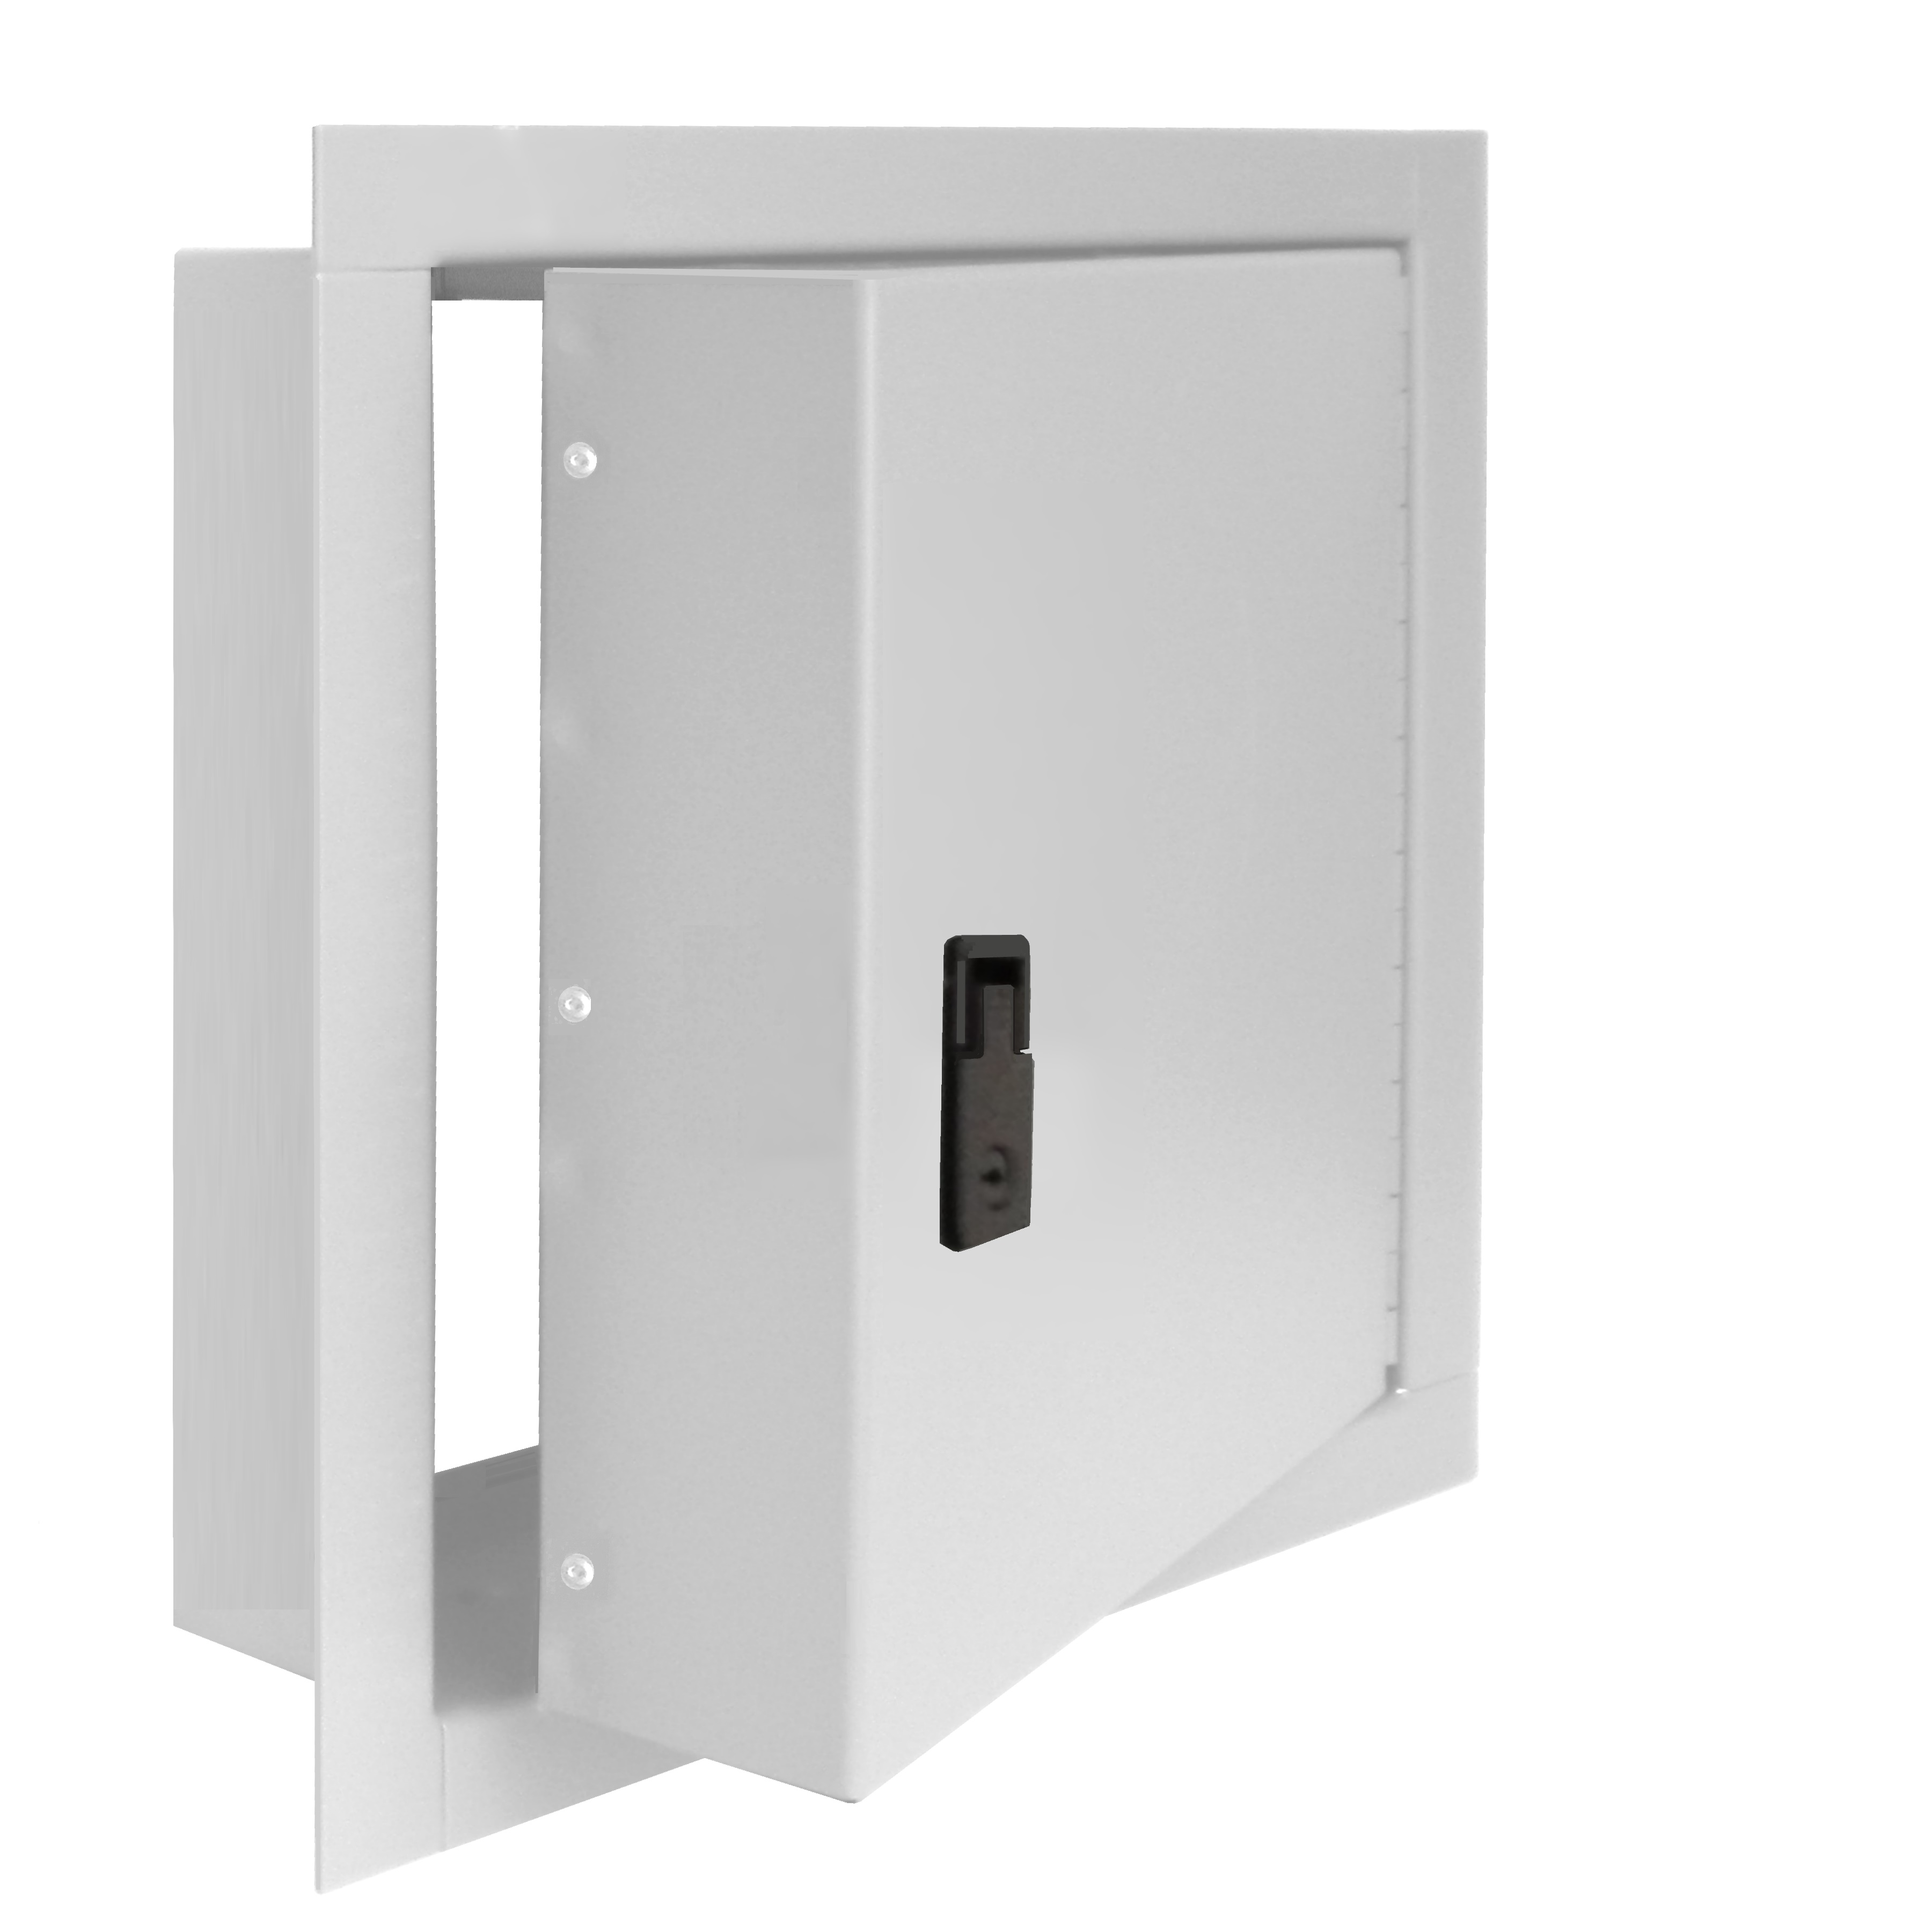 Wall Access Panel : Stc series rated flush access panels for walls